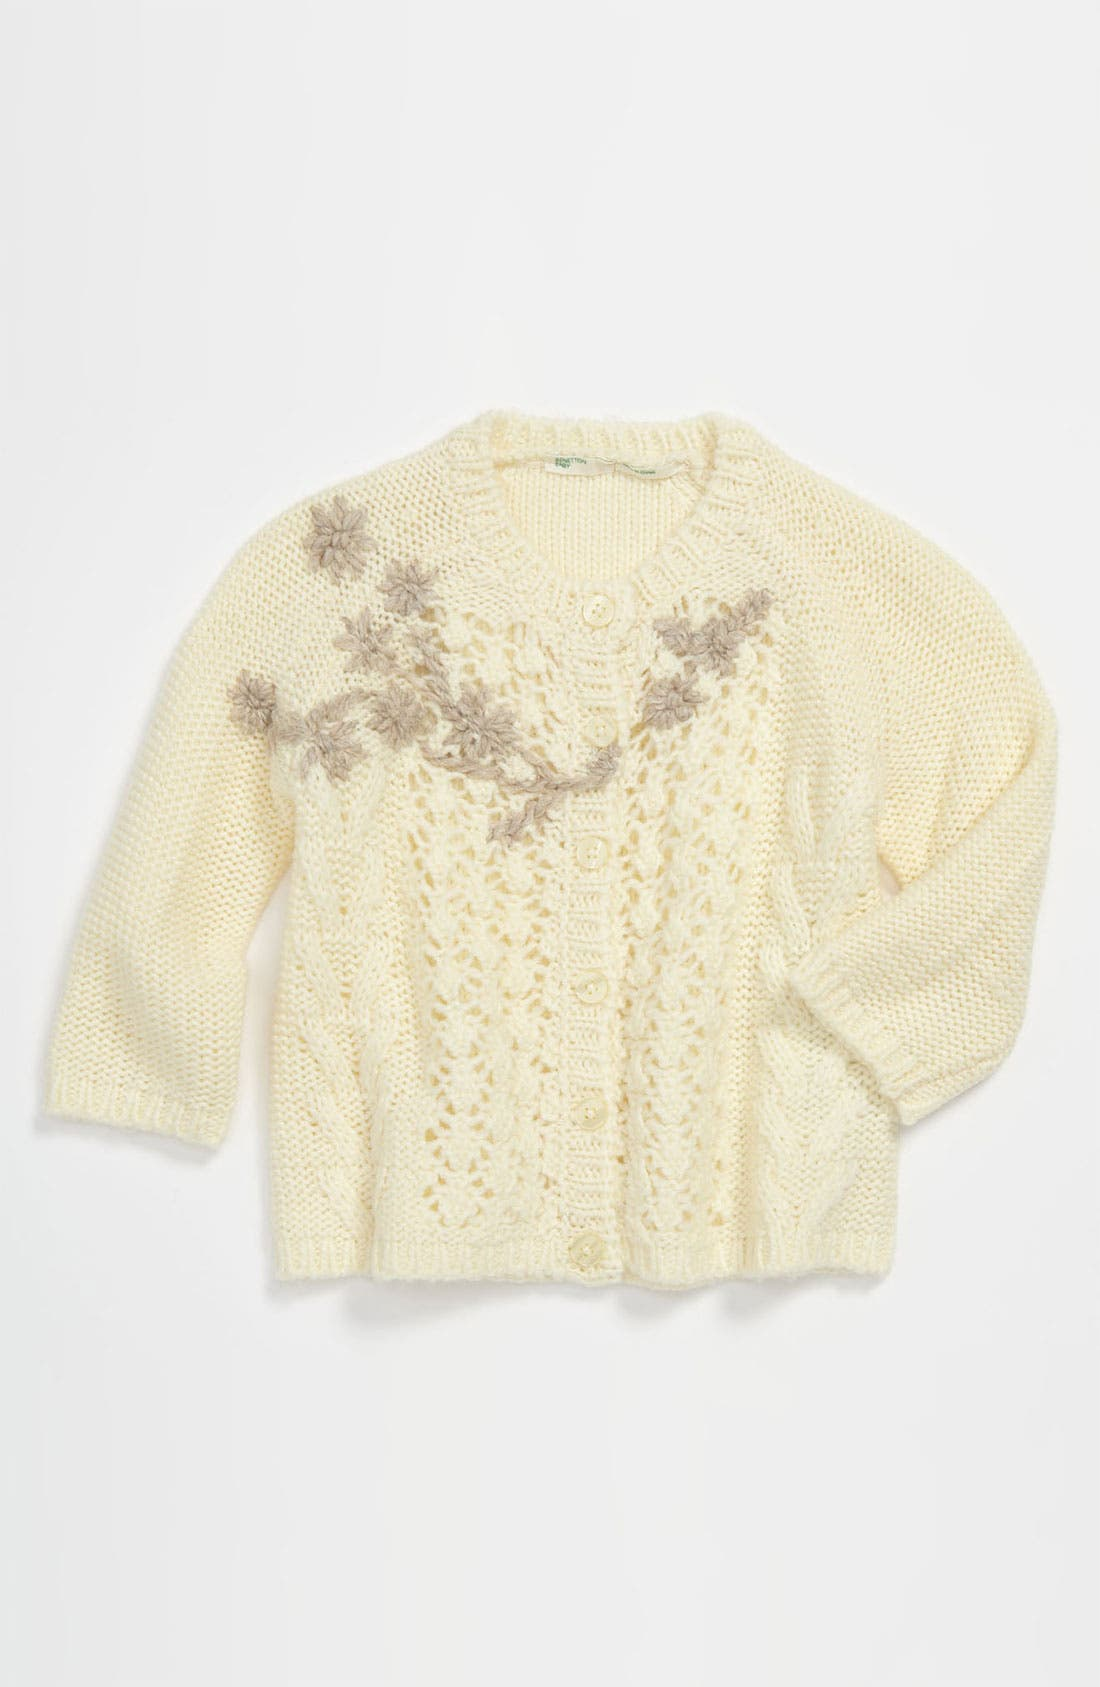 Main Image - United Colors of Benetton Kids Sweater (Infant)